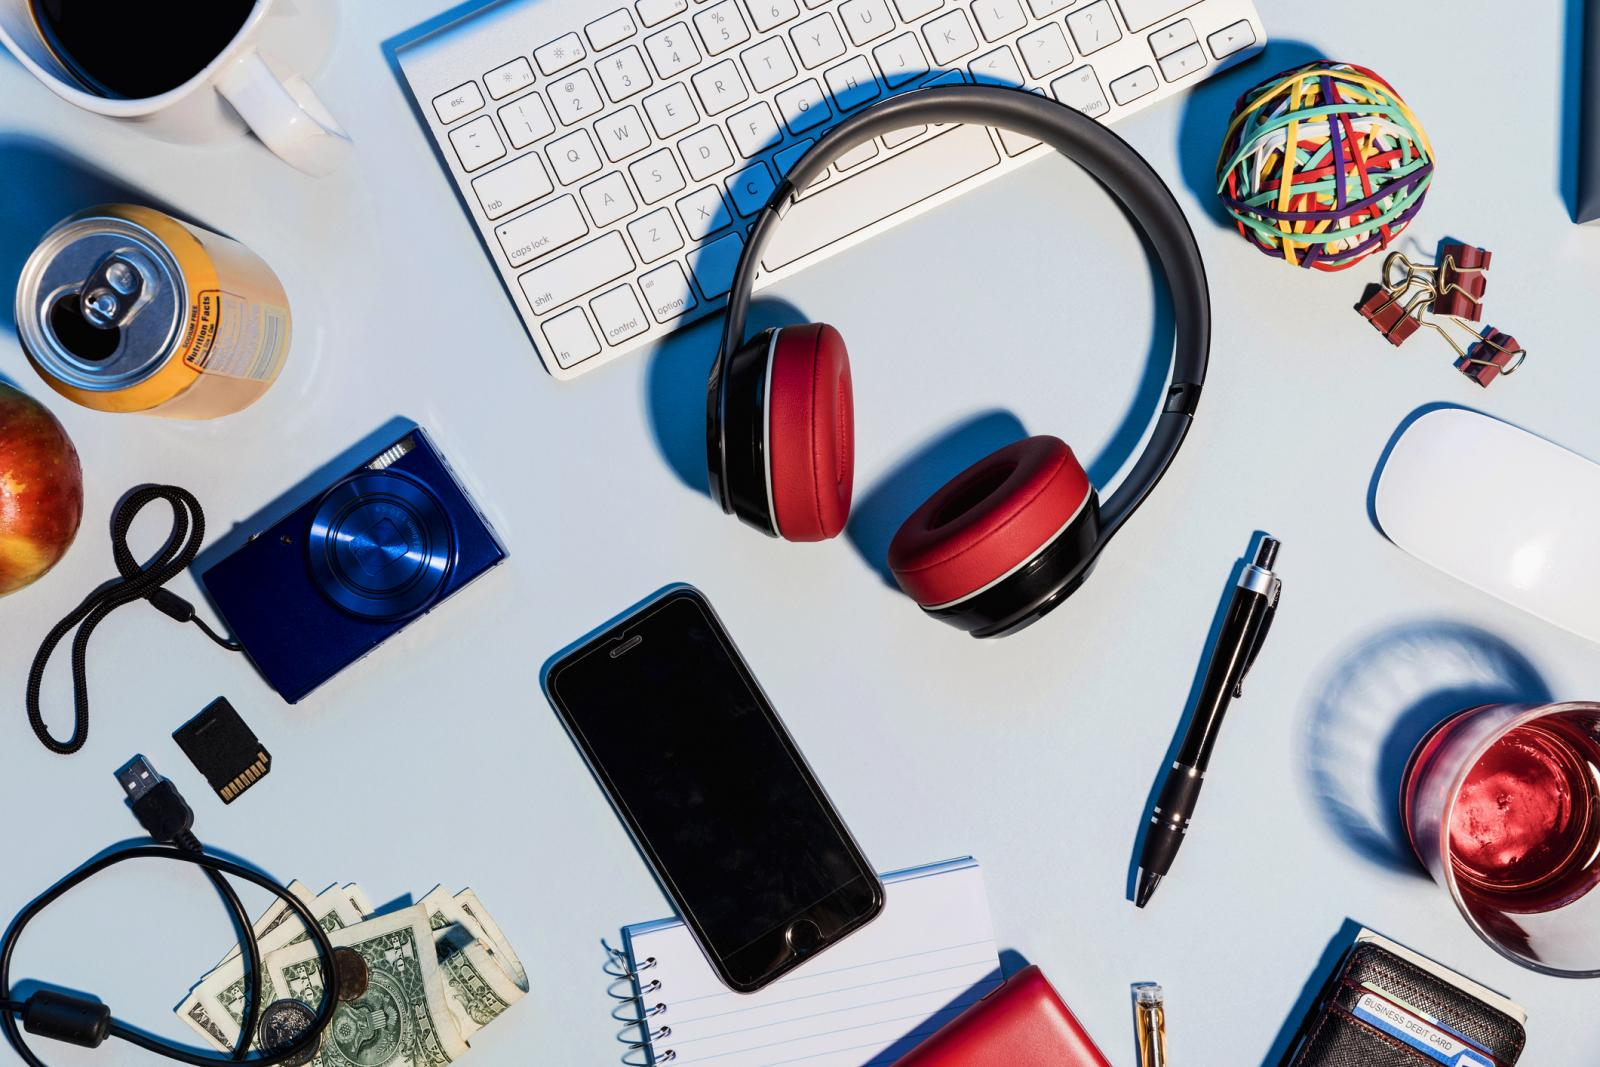 Headphones, smart phone, digital camera and office supplies on desk